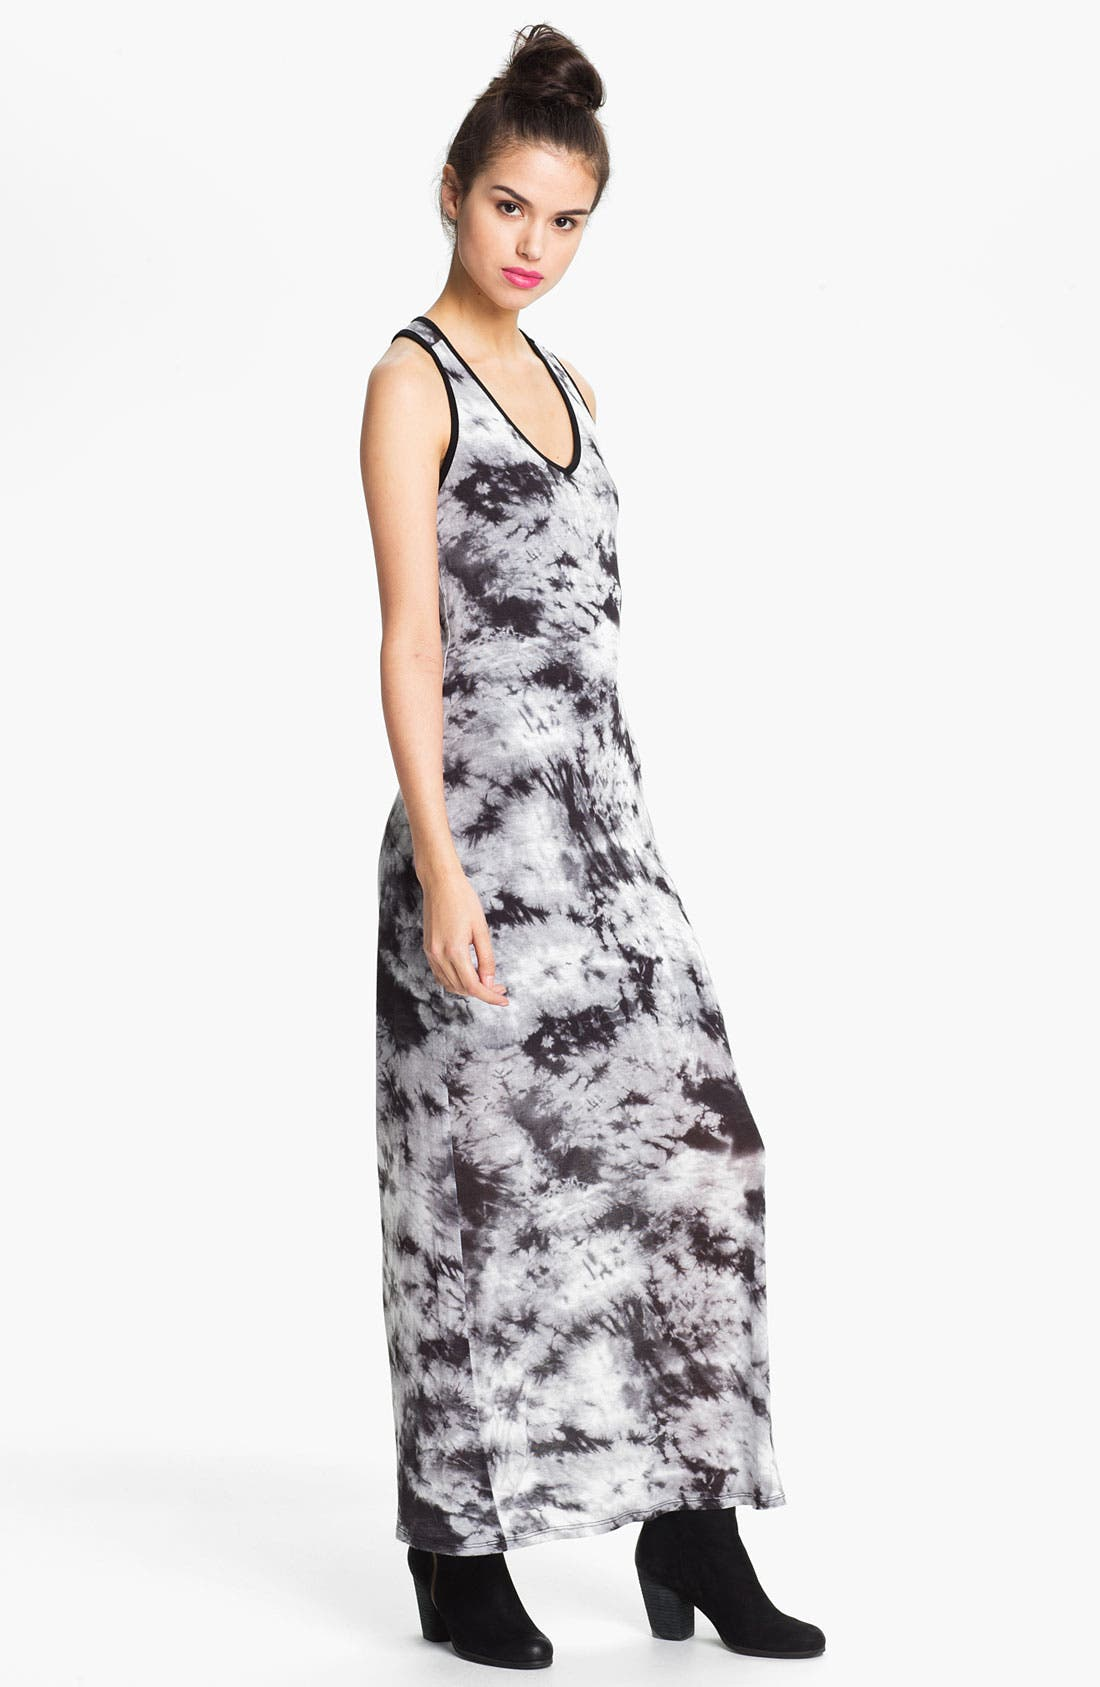 Main Image - Leola Couture Tie Dye Maxi Dress (Juniors)